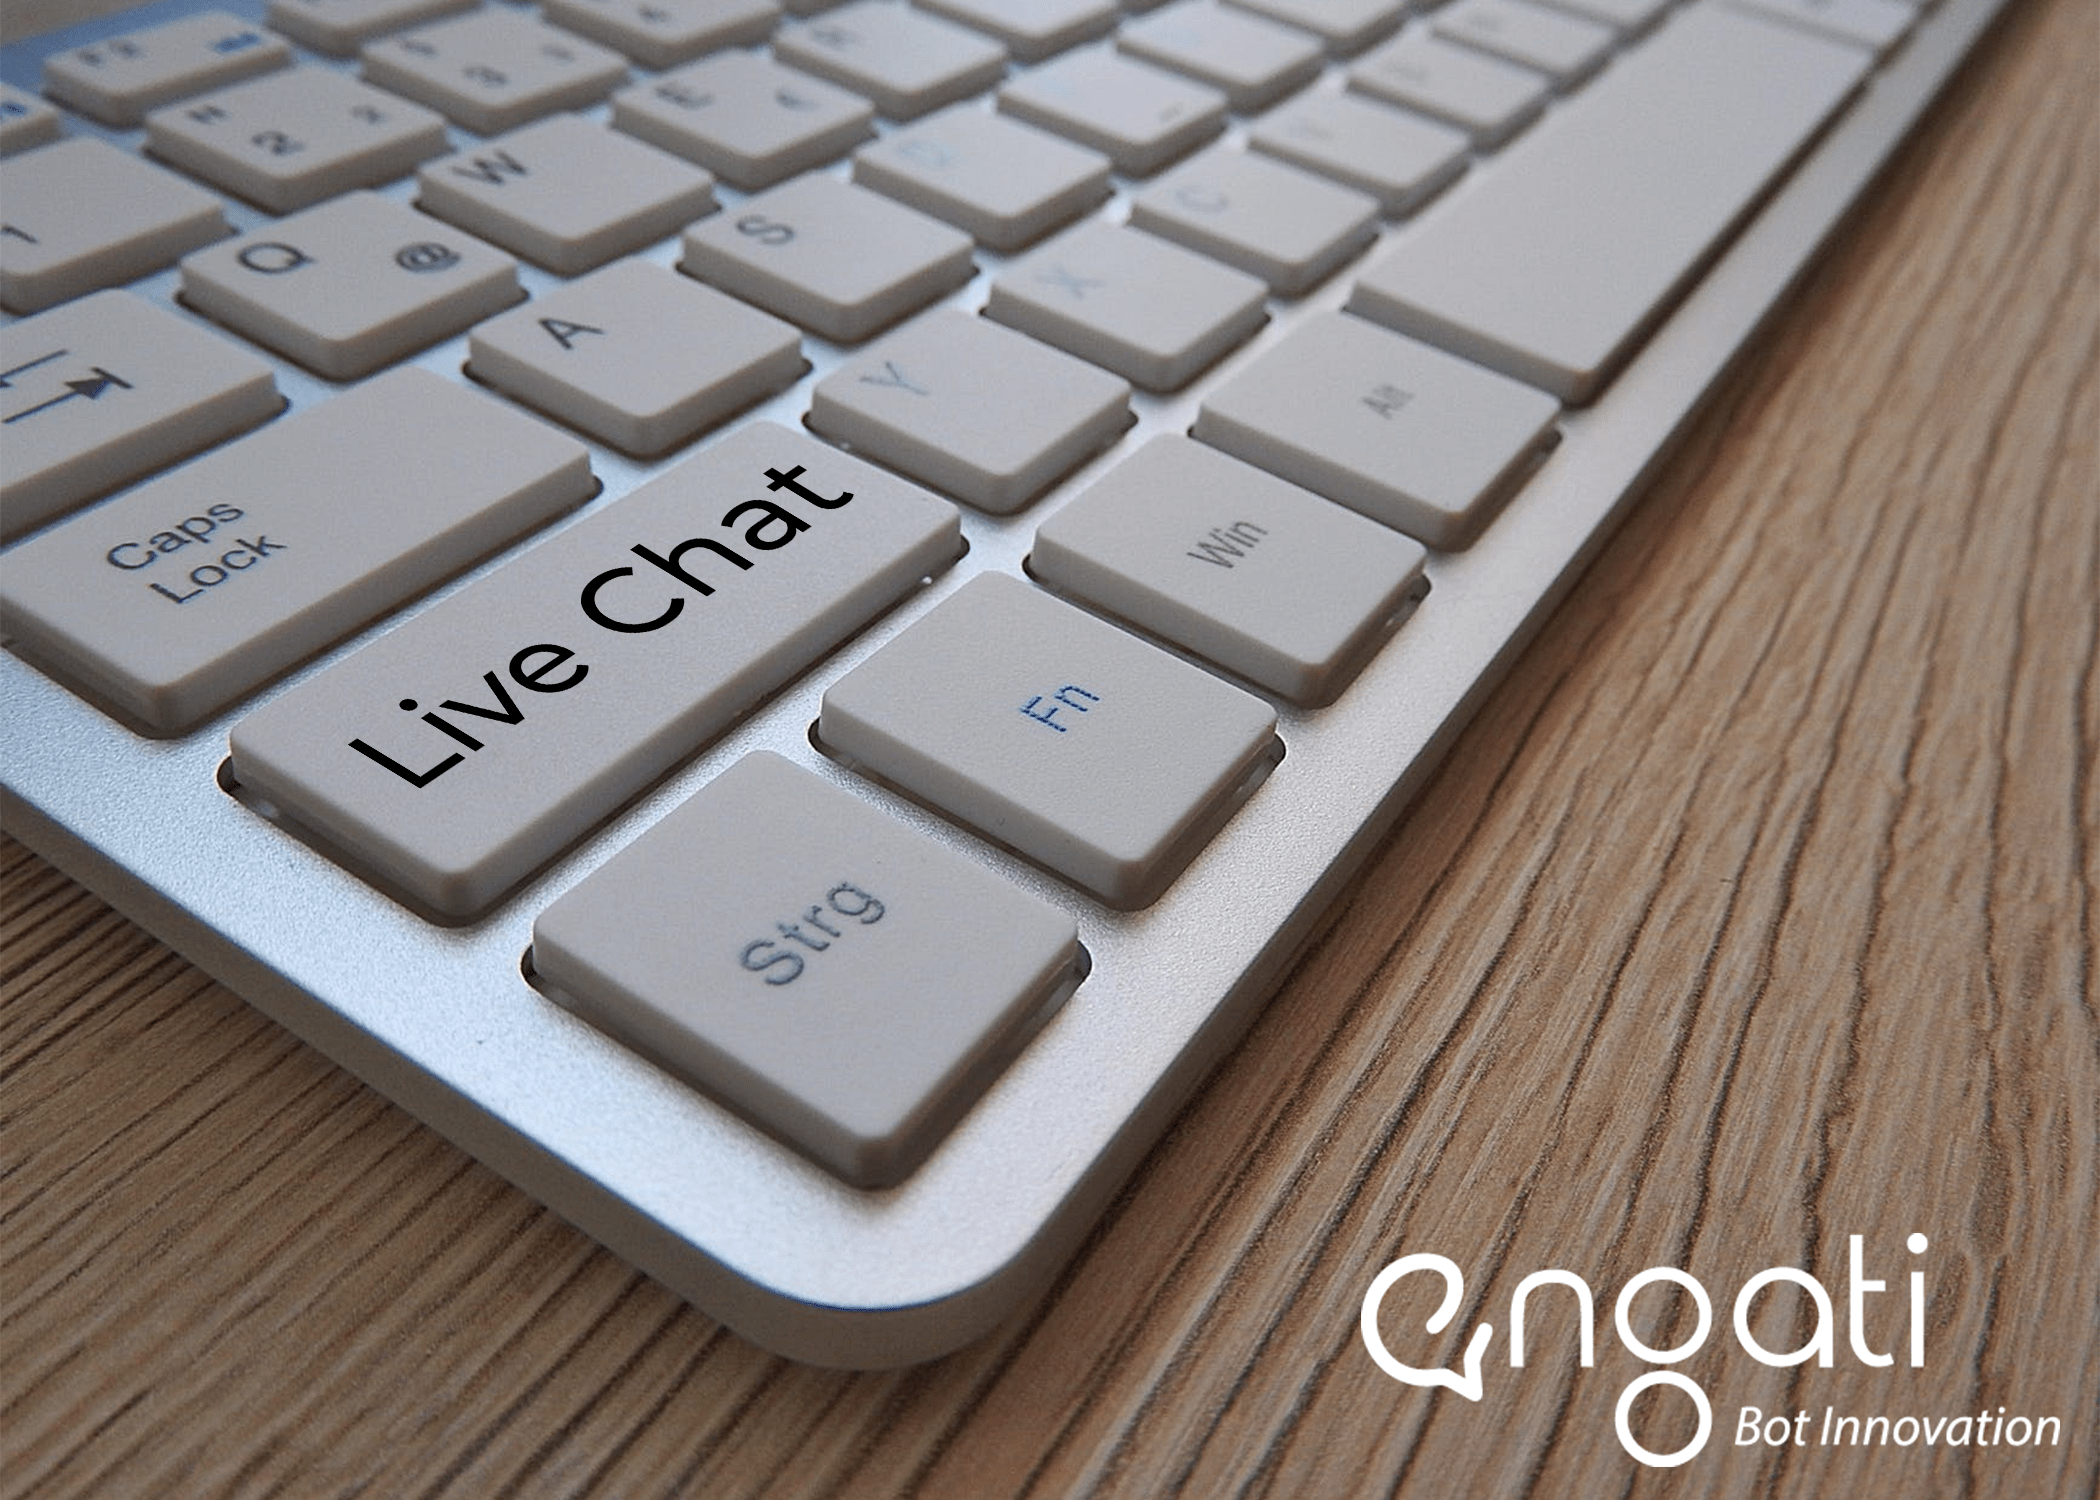 Engati Chatbot integrates live chat for better customer support